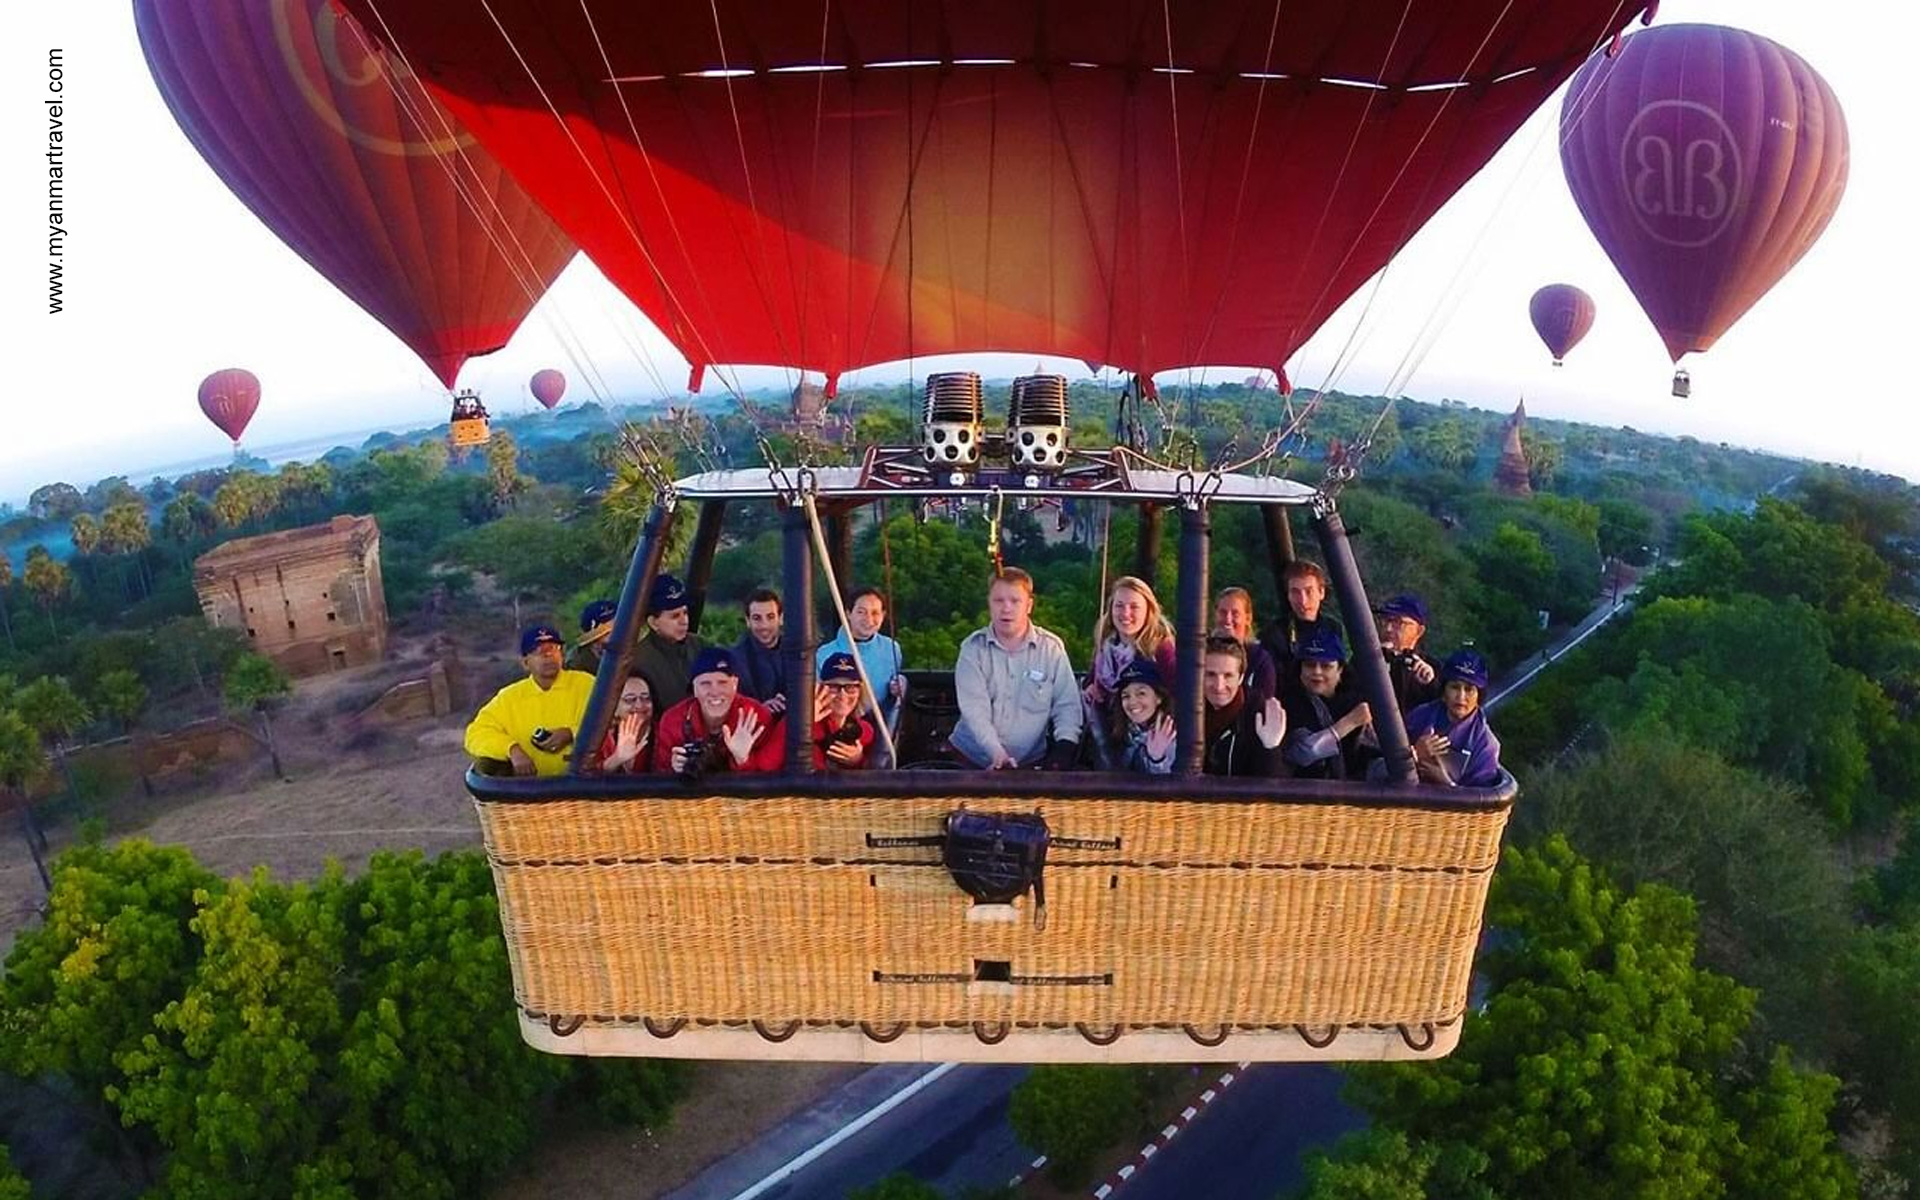 hot balloon air in Bagan 14